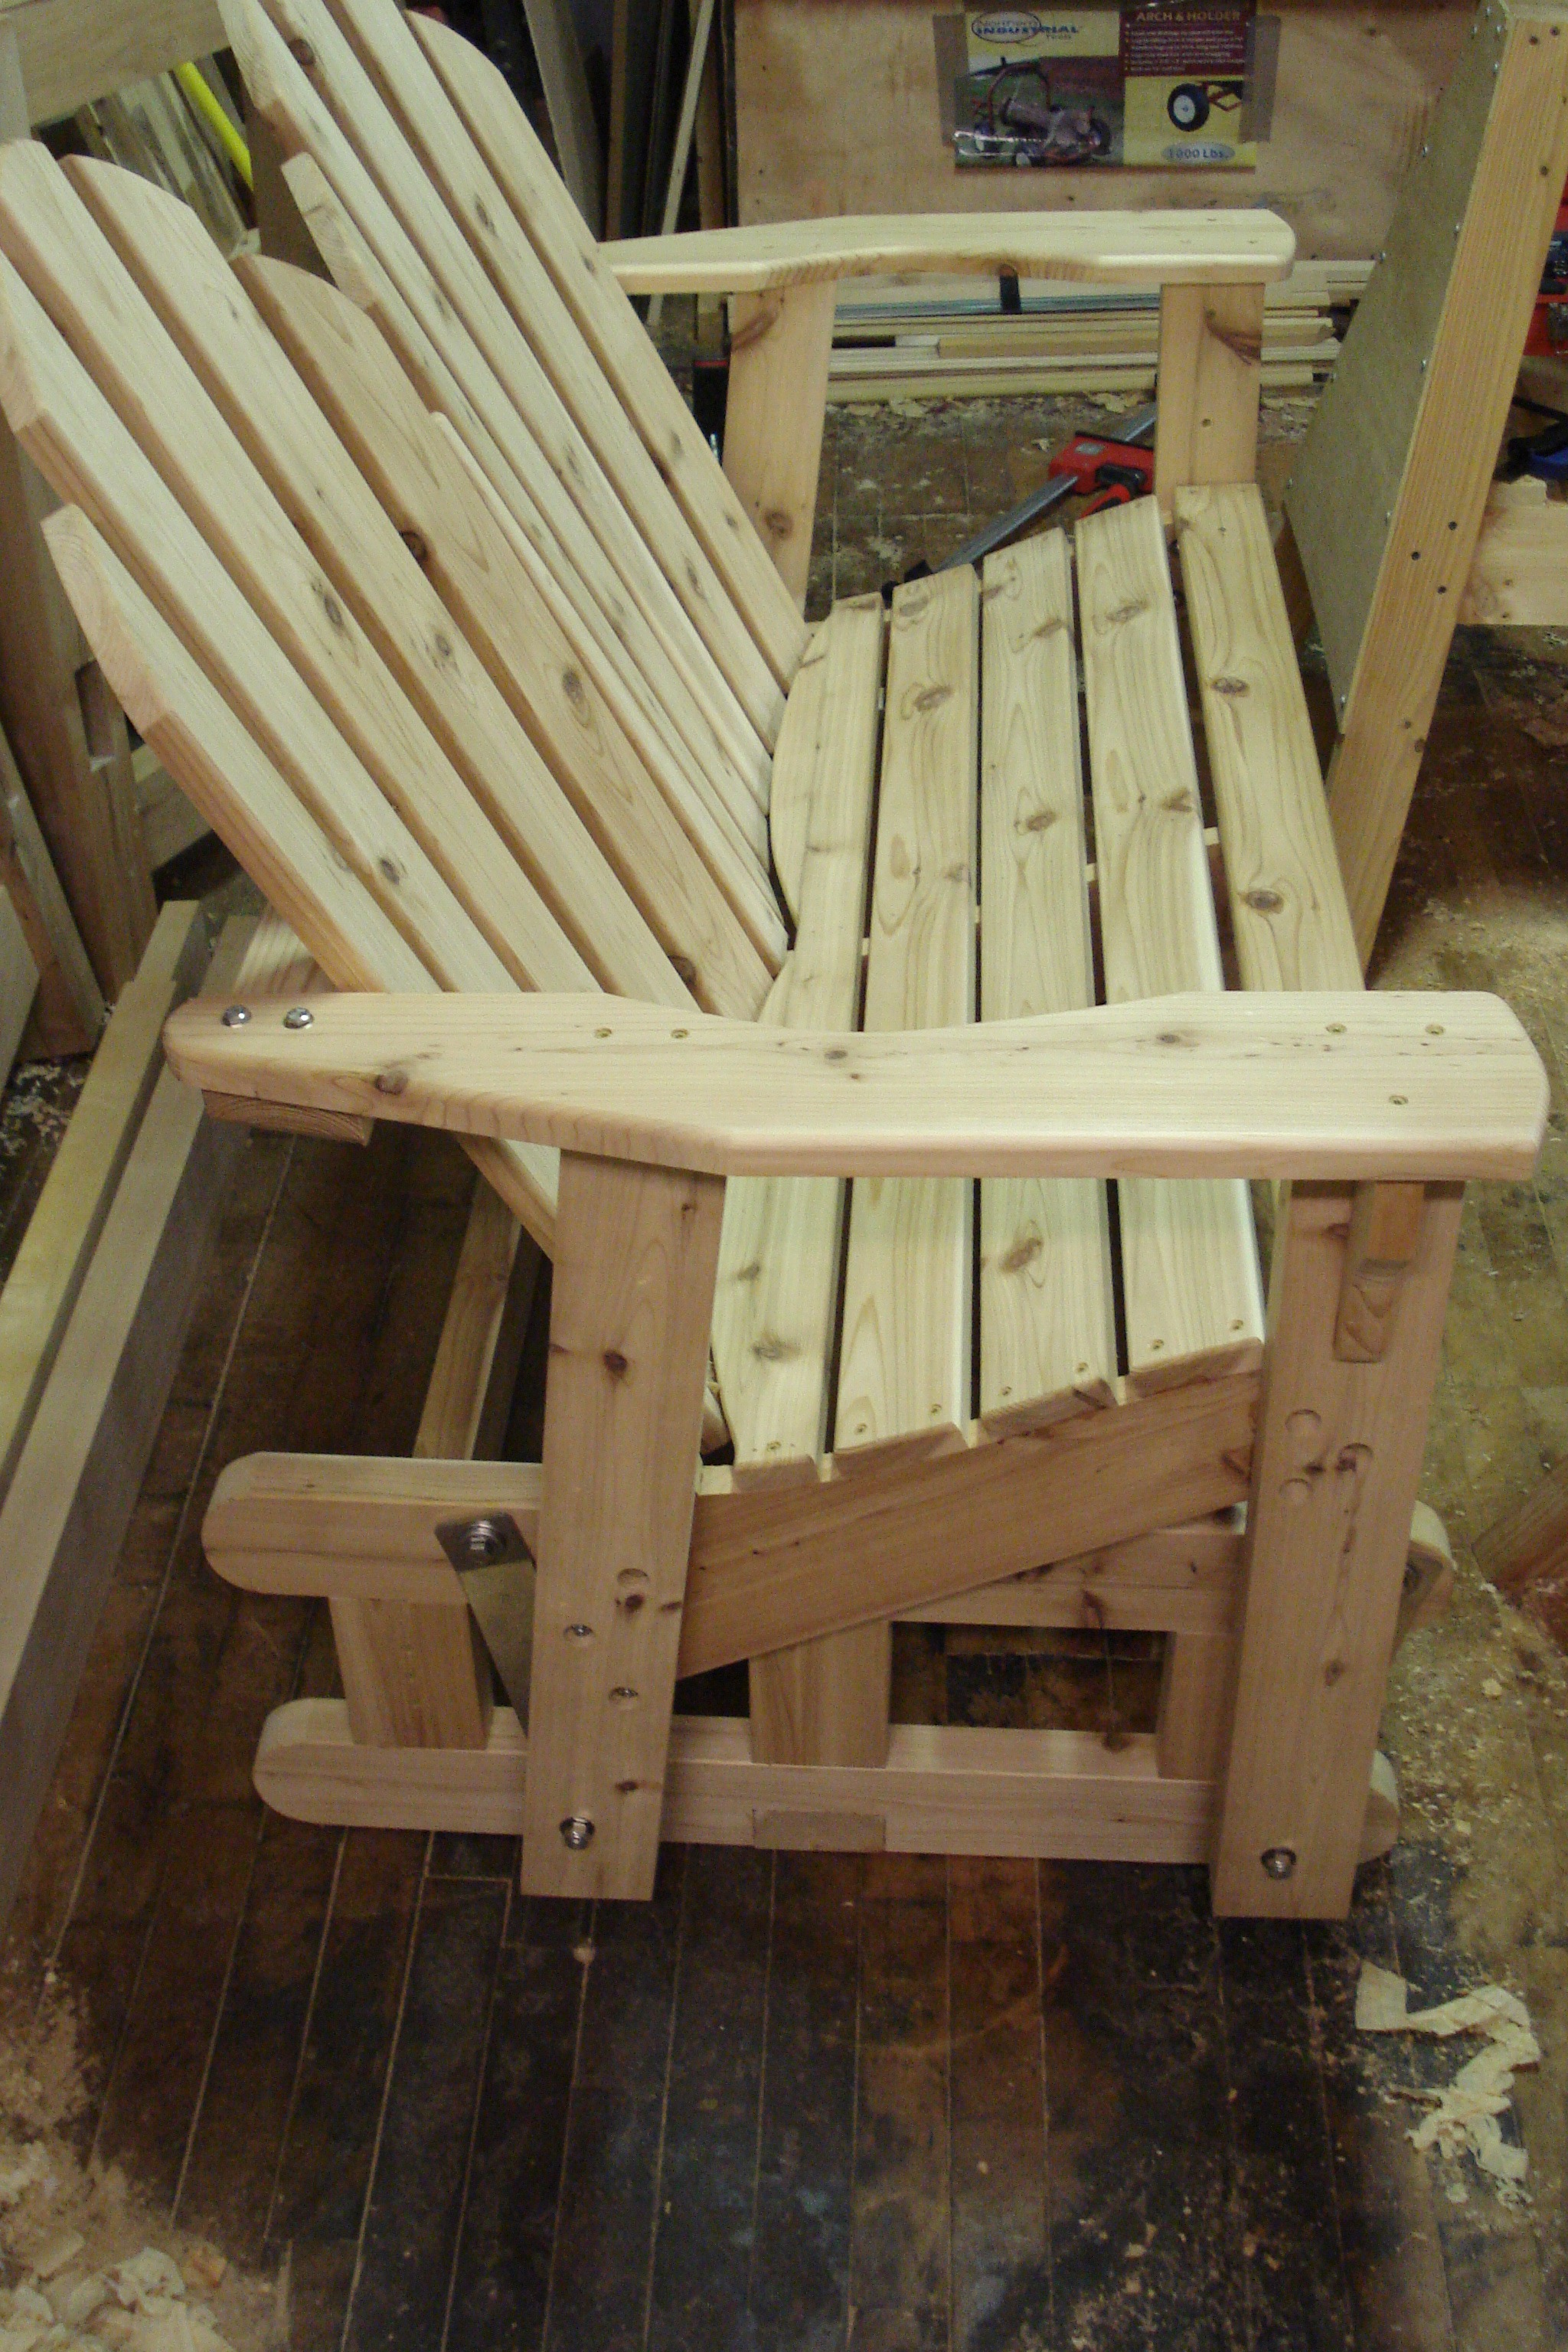 Build Glider Bench Instructions DIY PDF woodworking ideas kids ...